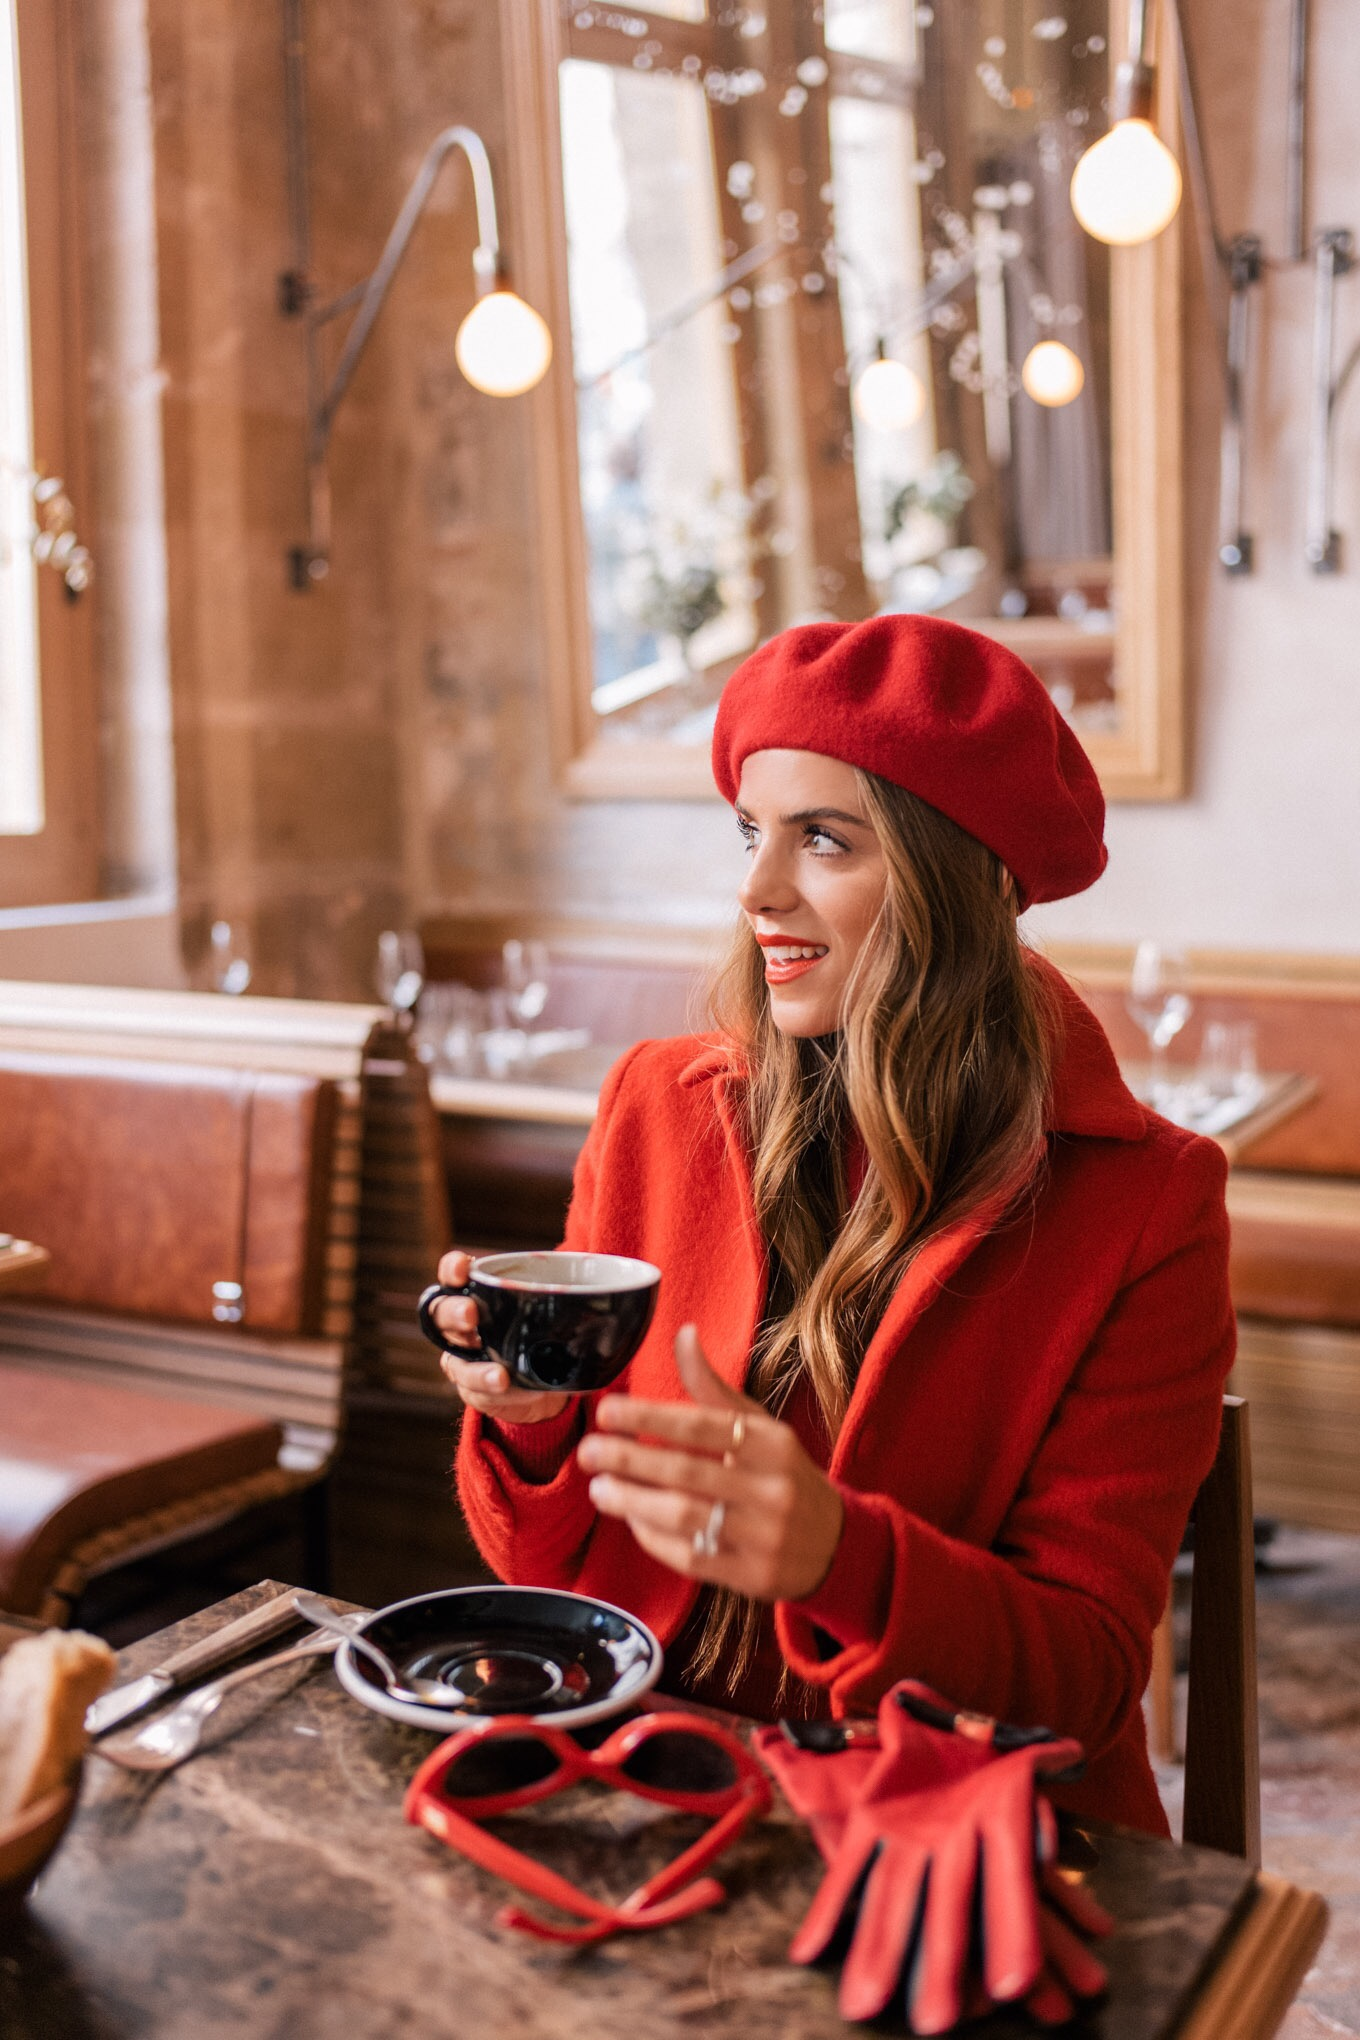 Birthday In Paris - Red Outfit